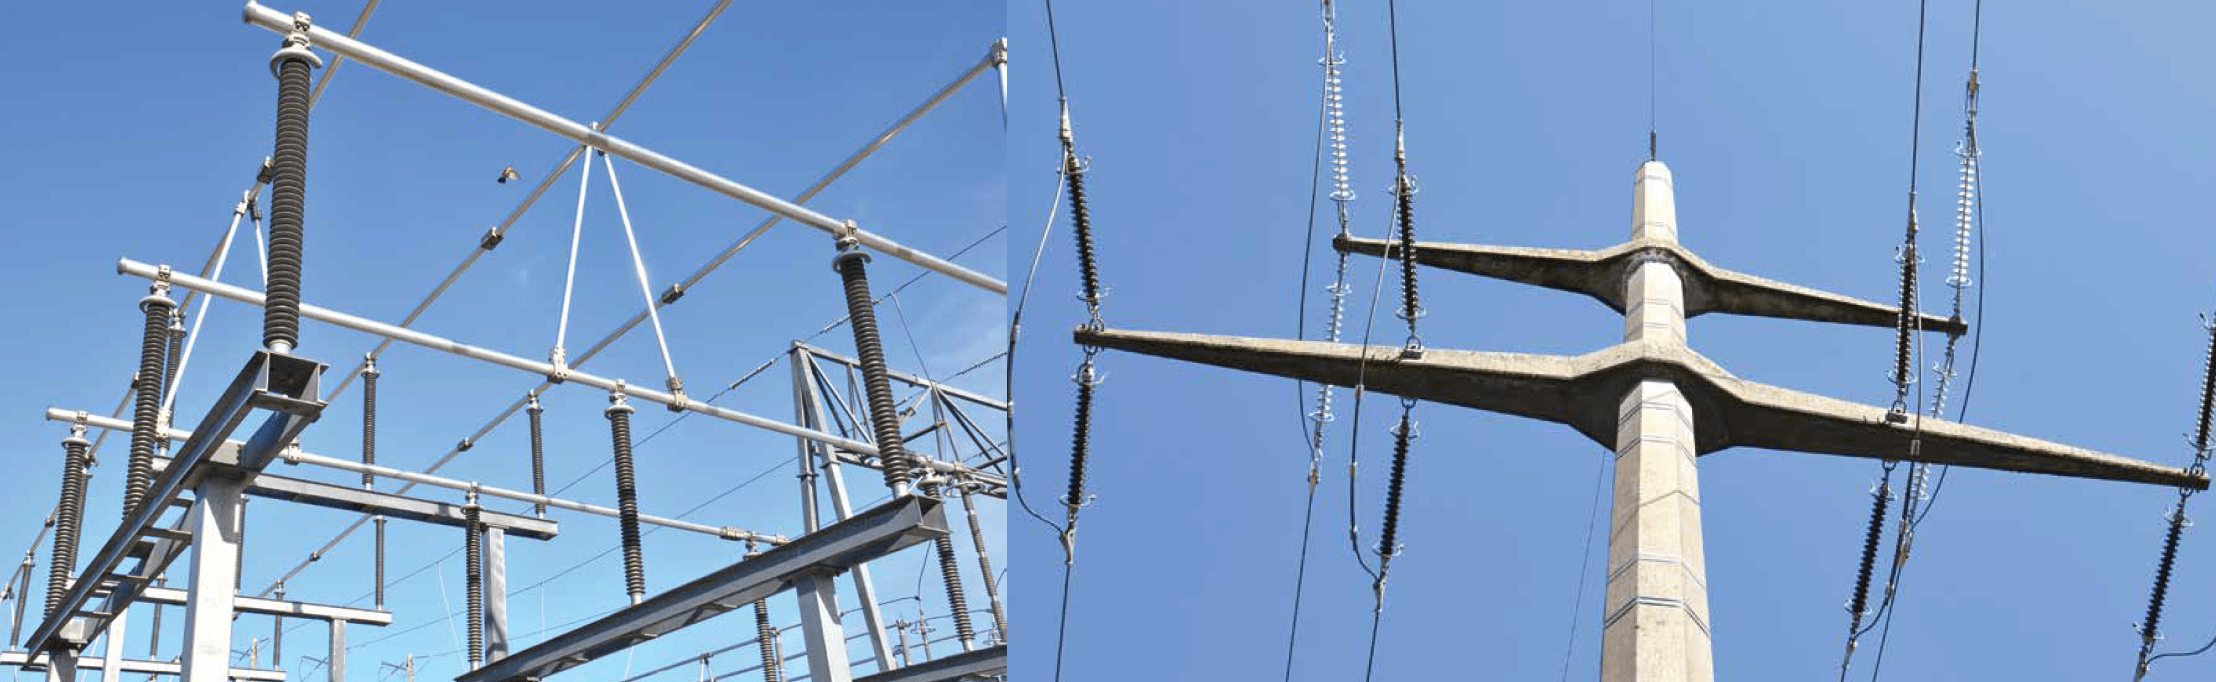 Transition to composite insulators for overhead line and substation applications, starting around end of last century, often occurred before suitable international standards were available to govern these. IEC IEC's Role Grows in Standards for Power Sector Screen Shot 2016 08 05 at 14